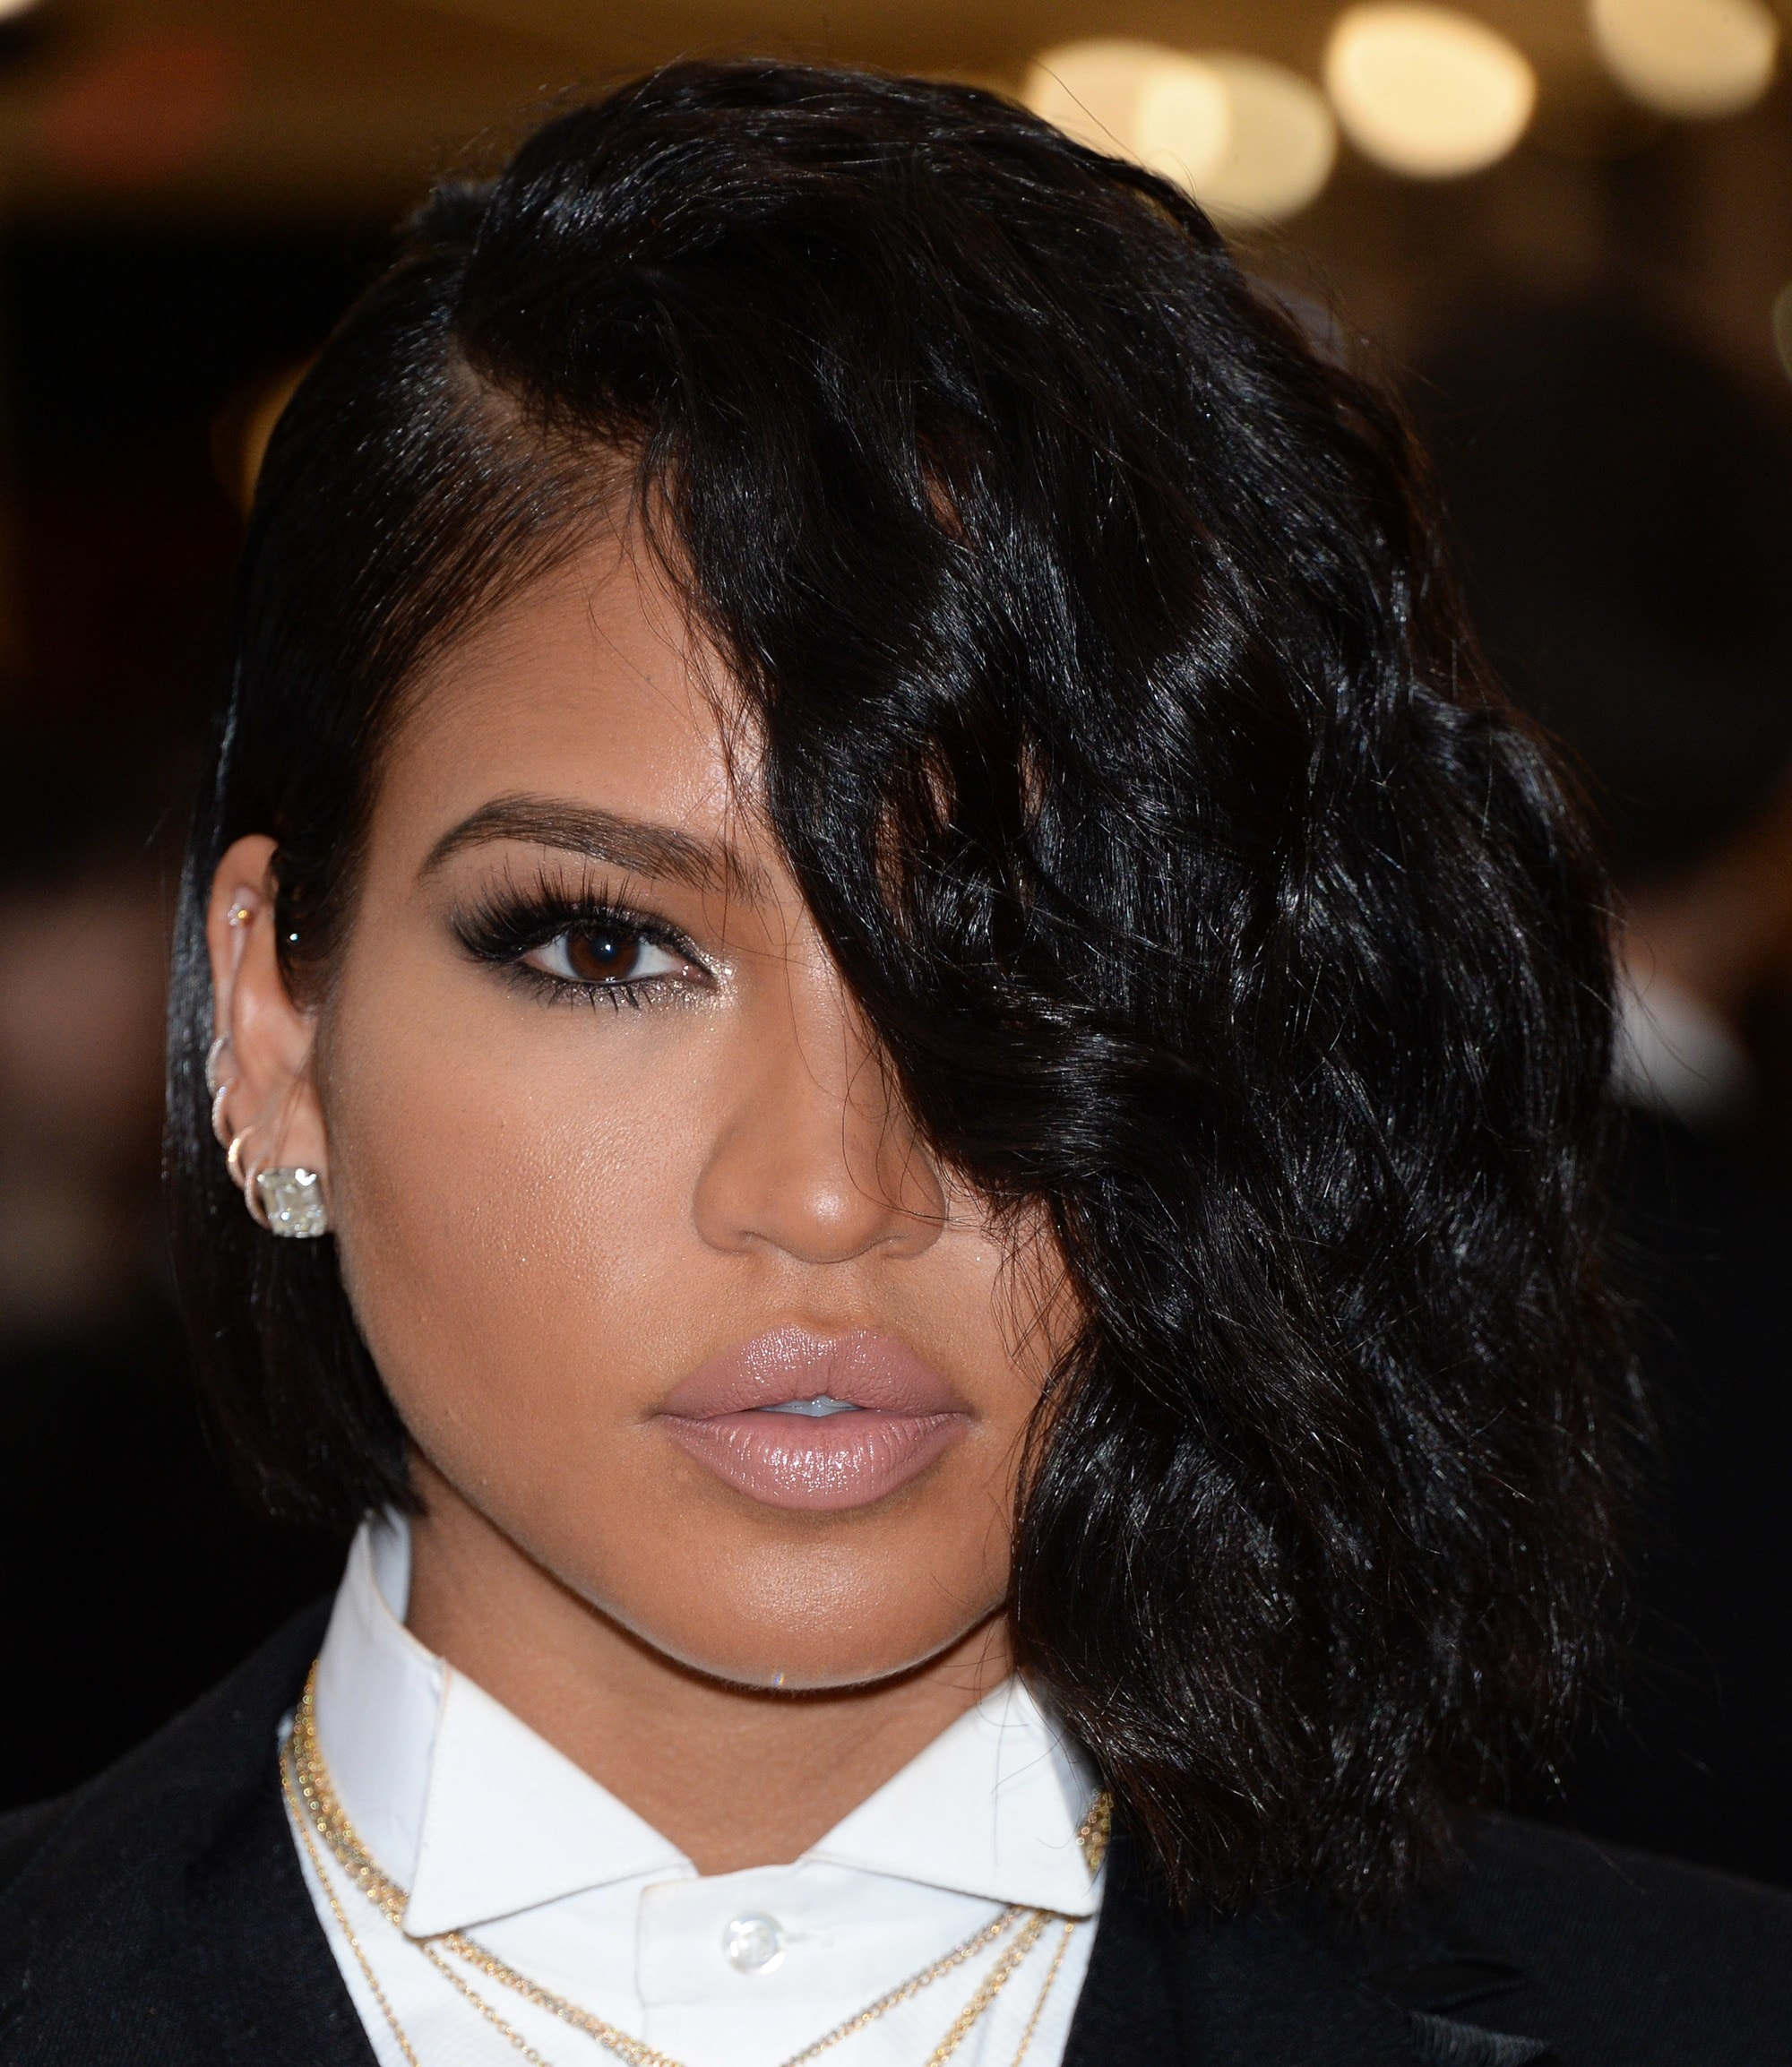 Bob hairstyles: Cassie Ventura with dark bob cut with long side swept fringe covering her eye on the red carpet